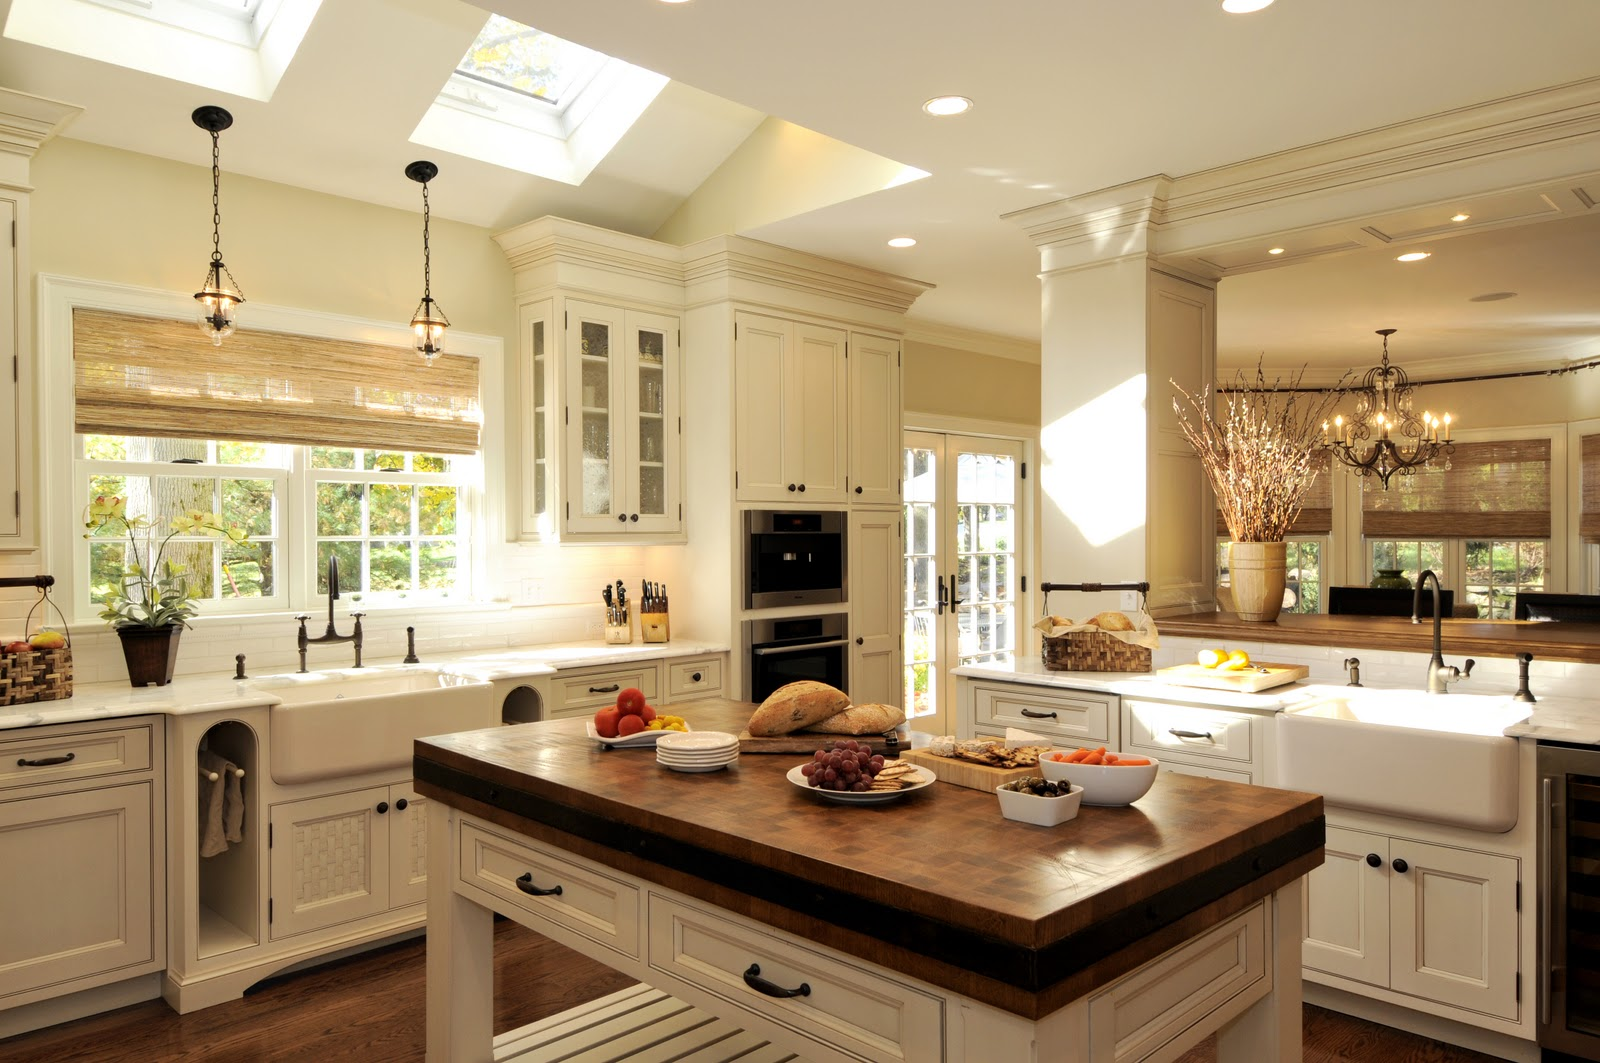 Amazing Spaces Blog: Head: What Defines A Classic Kitchen?